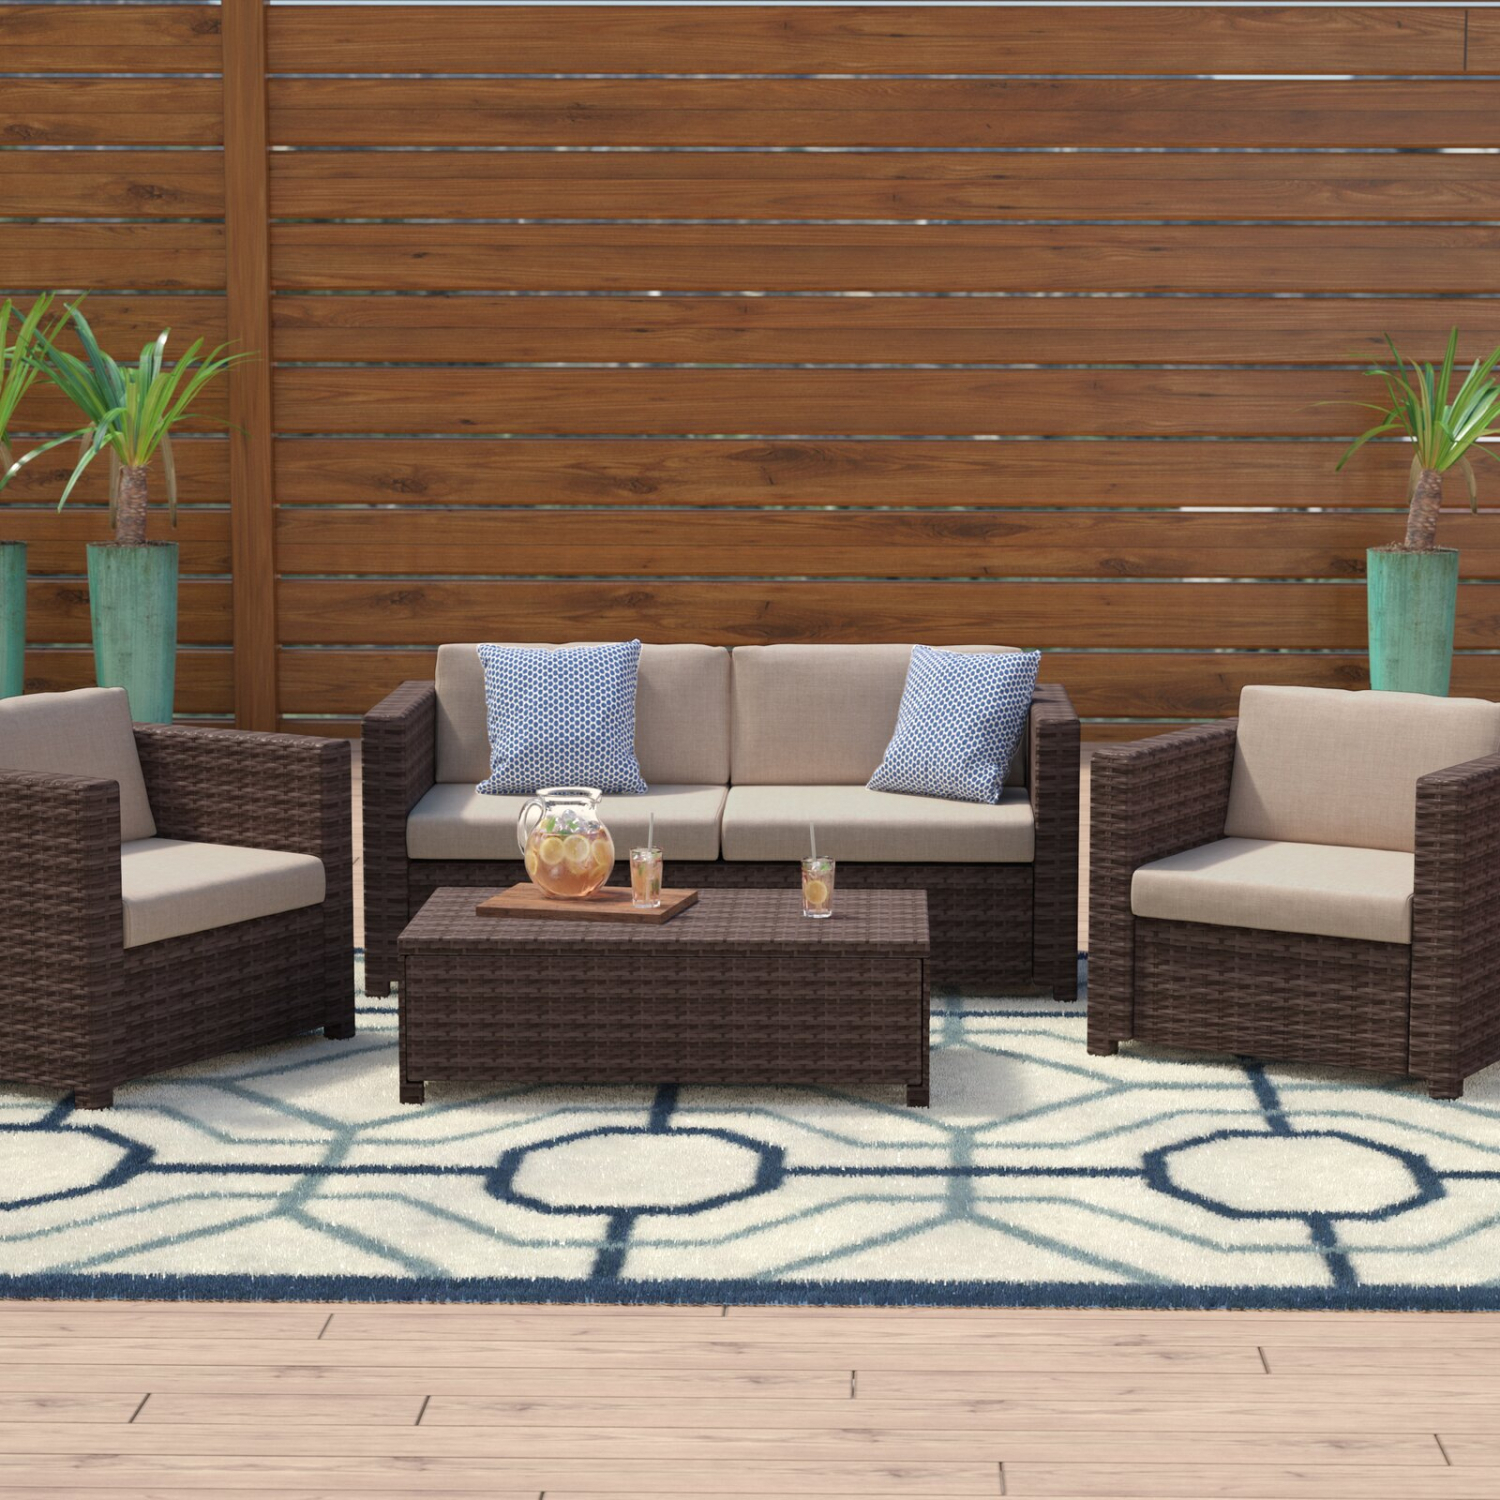 4 Piece Patio Furniture Set Brown Rattan Sofa Seating With Regard To Sofa With Chairs (View 13 of 15)